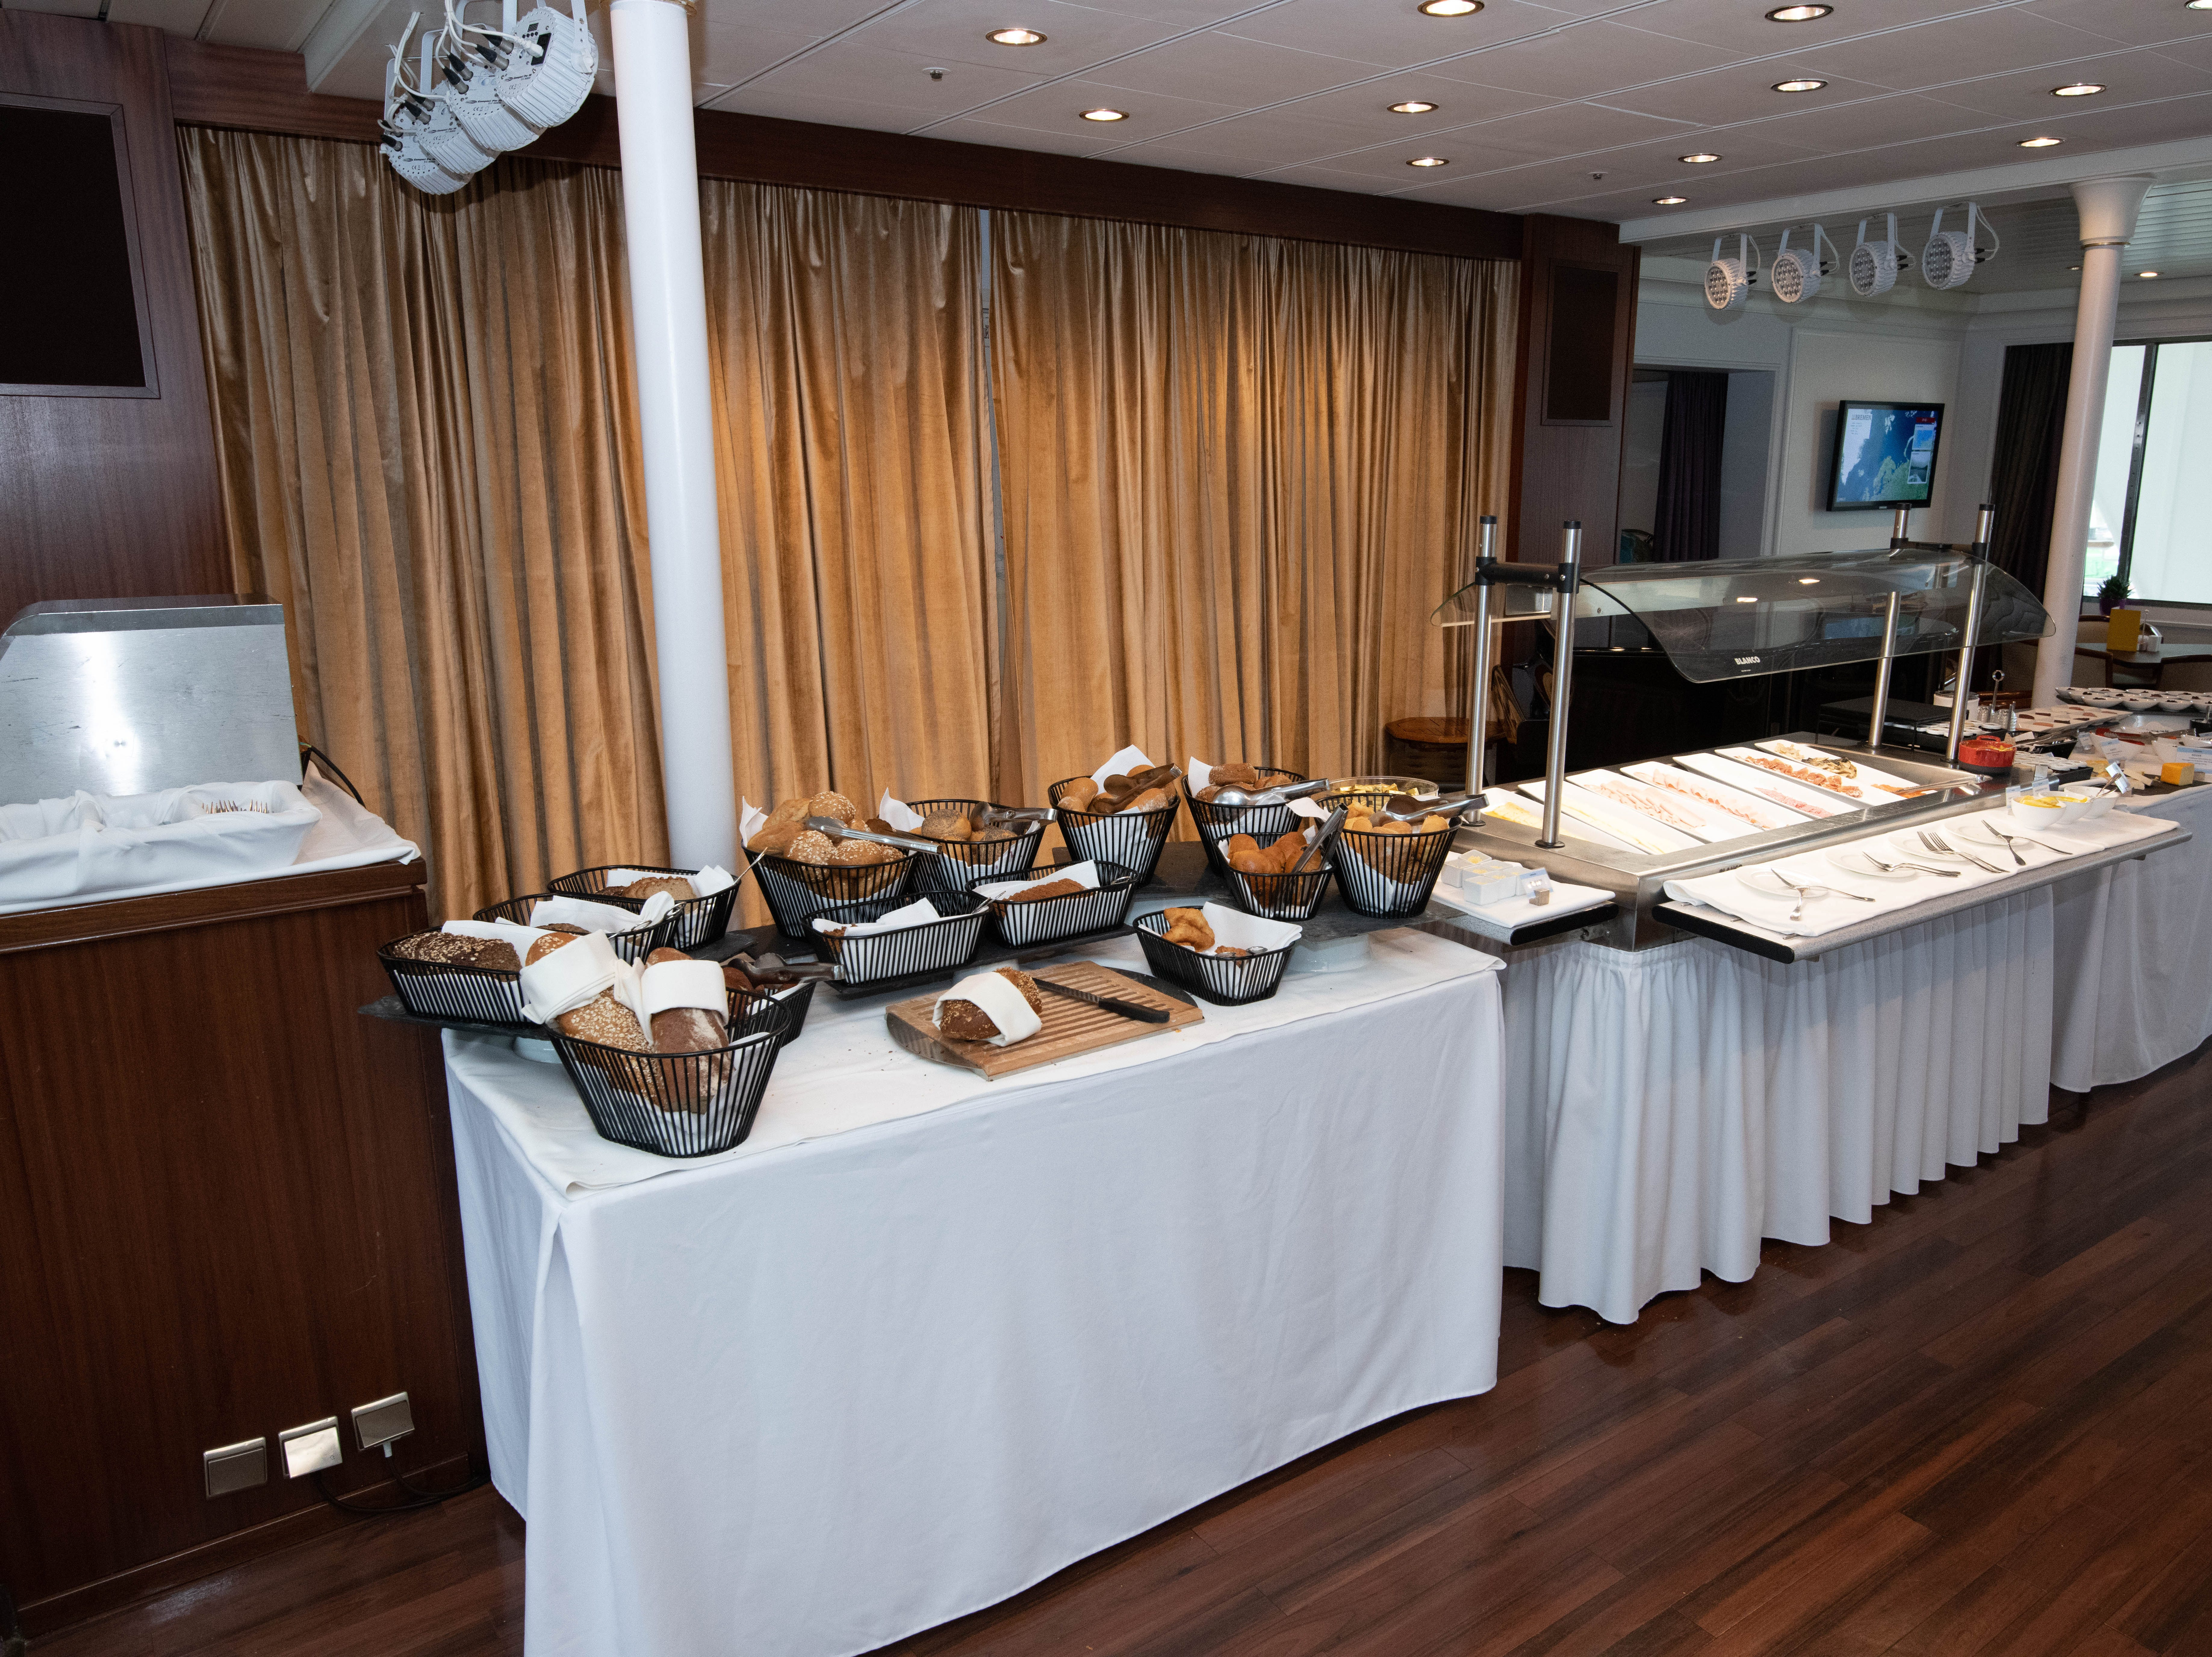 Buffet stations are set up in the dance floor area of the Bremen Club lounge during traditional breakfast and lunch times.